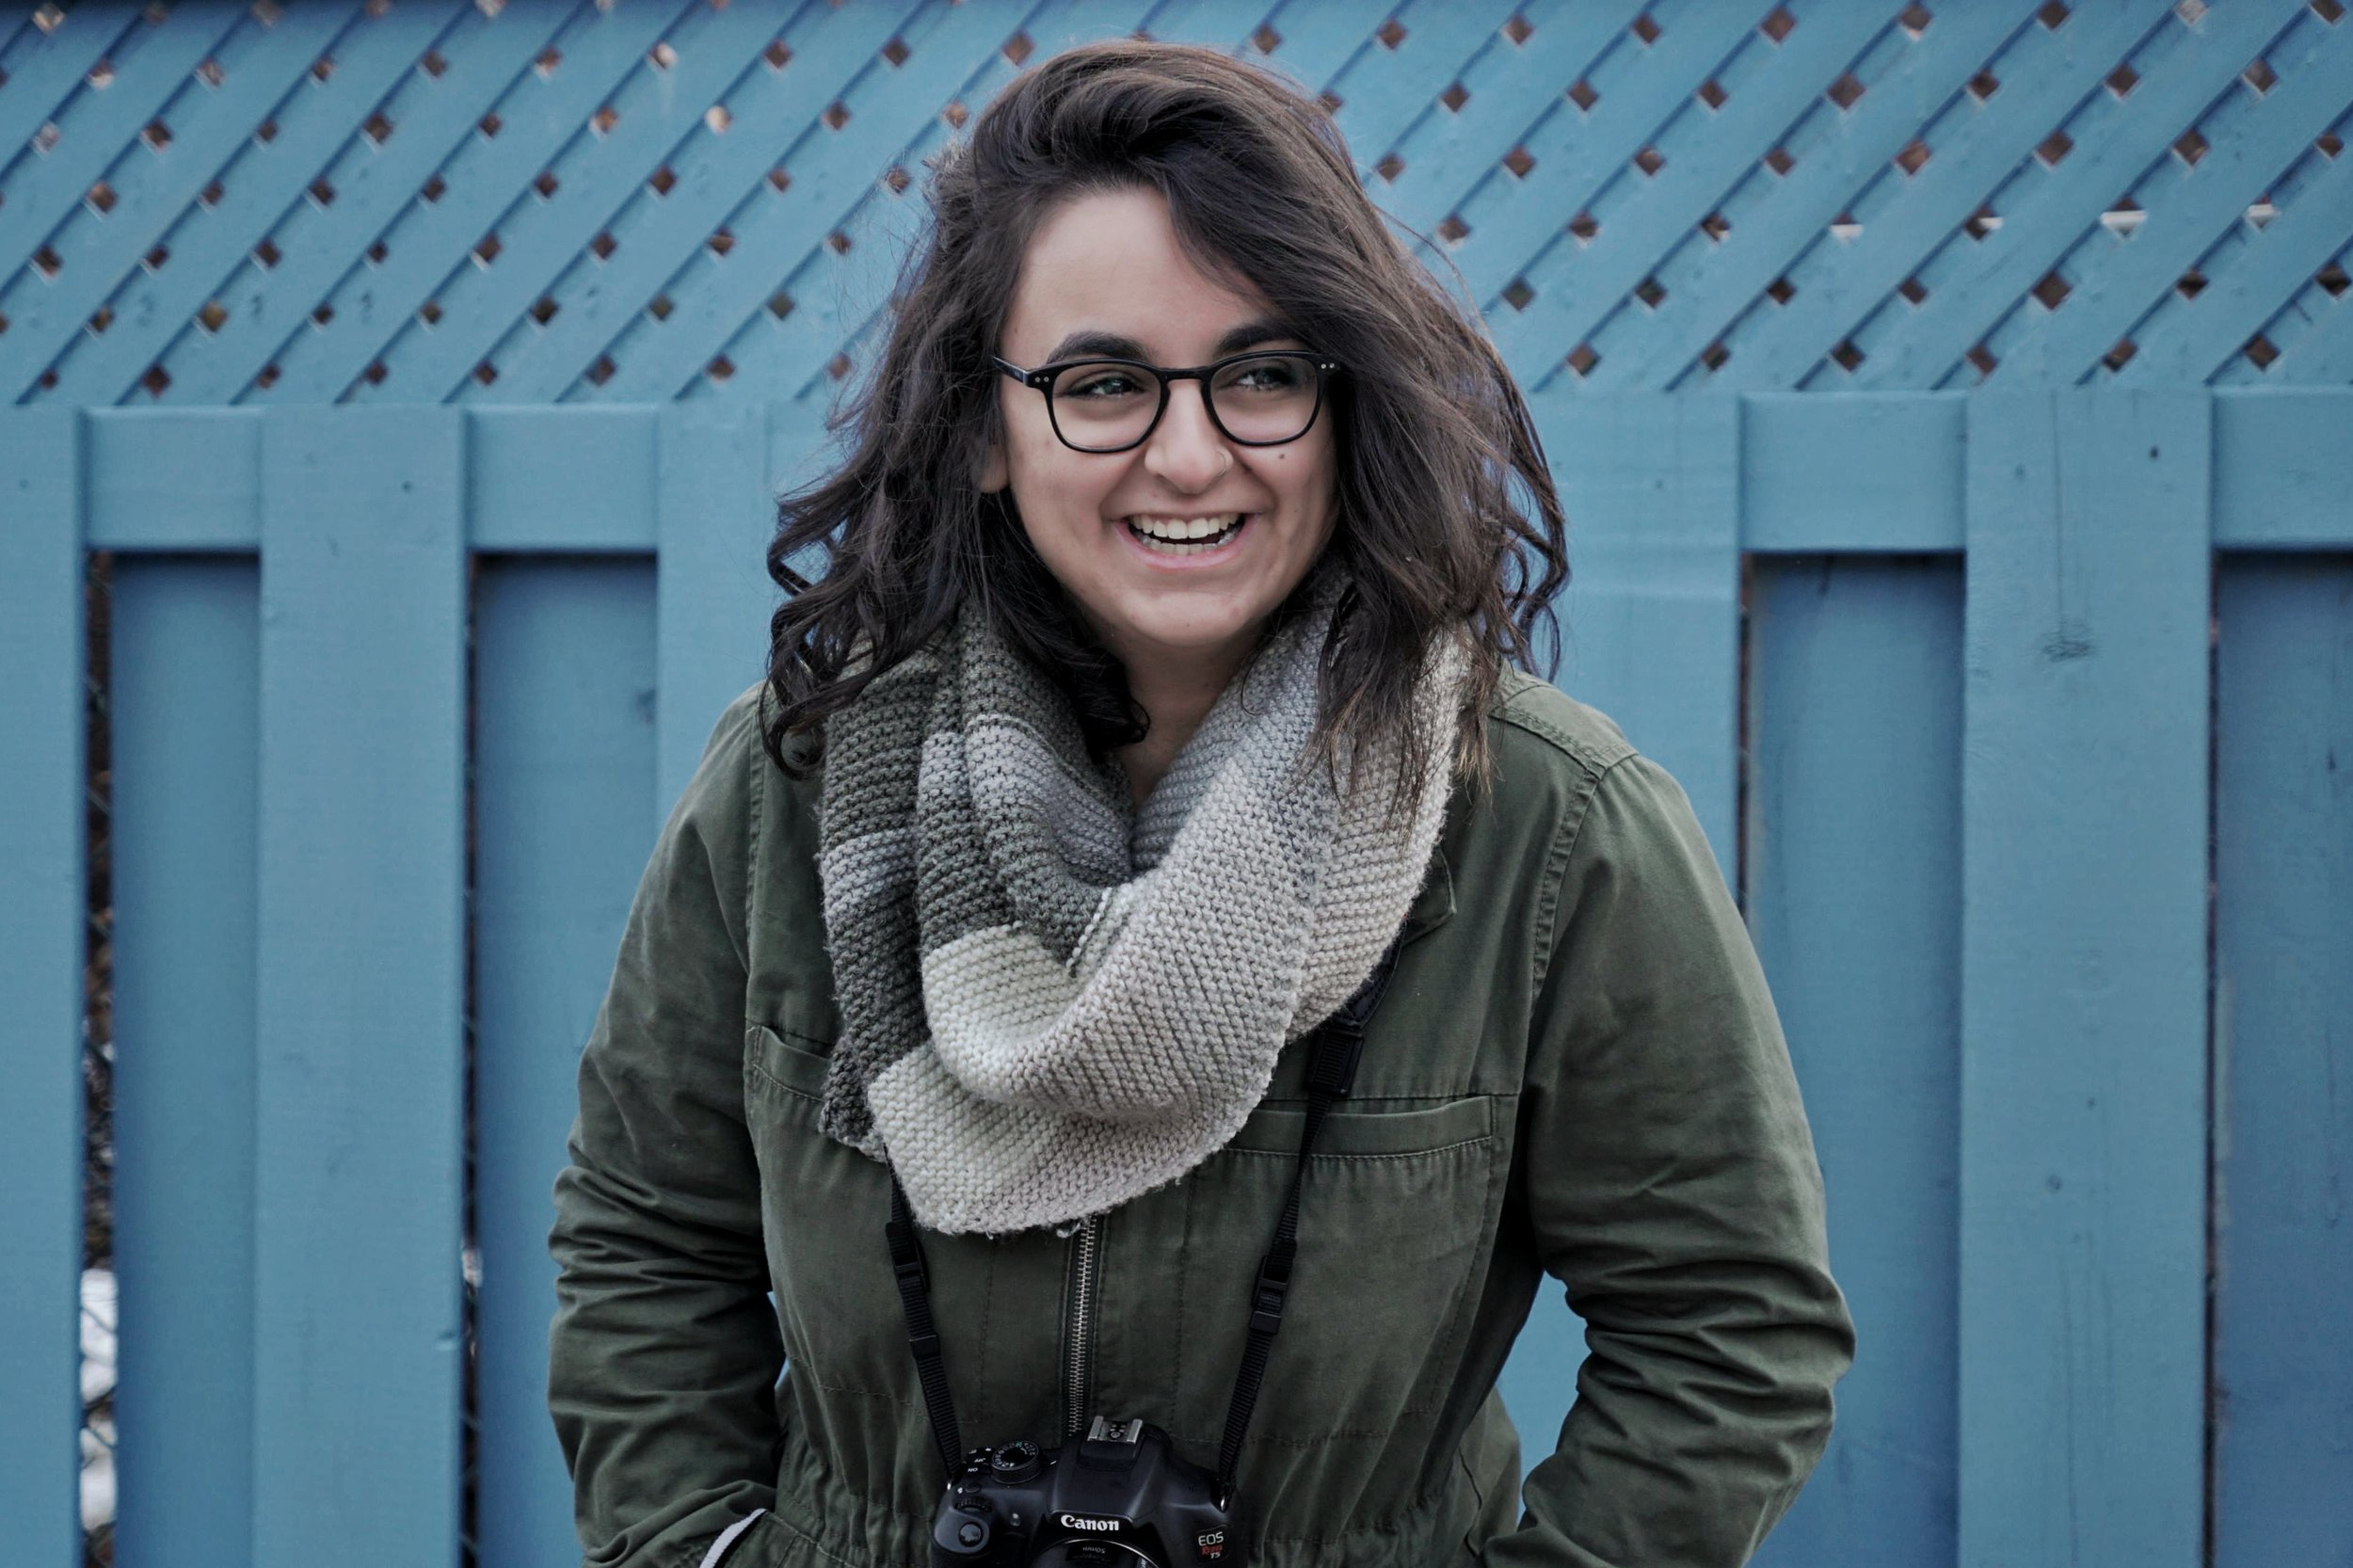 Katherine Sousa  -  Publicity & Media Assistant.  Katherine works full time in Public Relations and is also one-half of the  Two Market Girls . Check out their  YouTube channel  for awesome recipes and all things vegan!